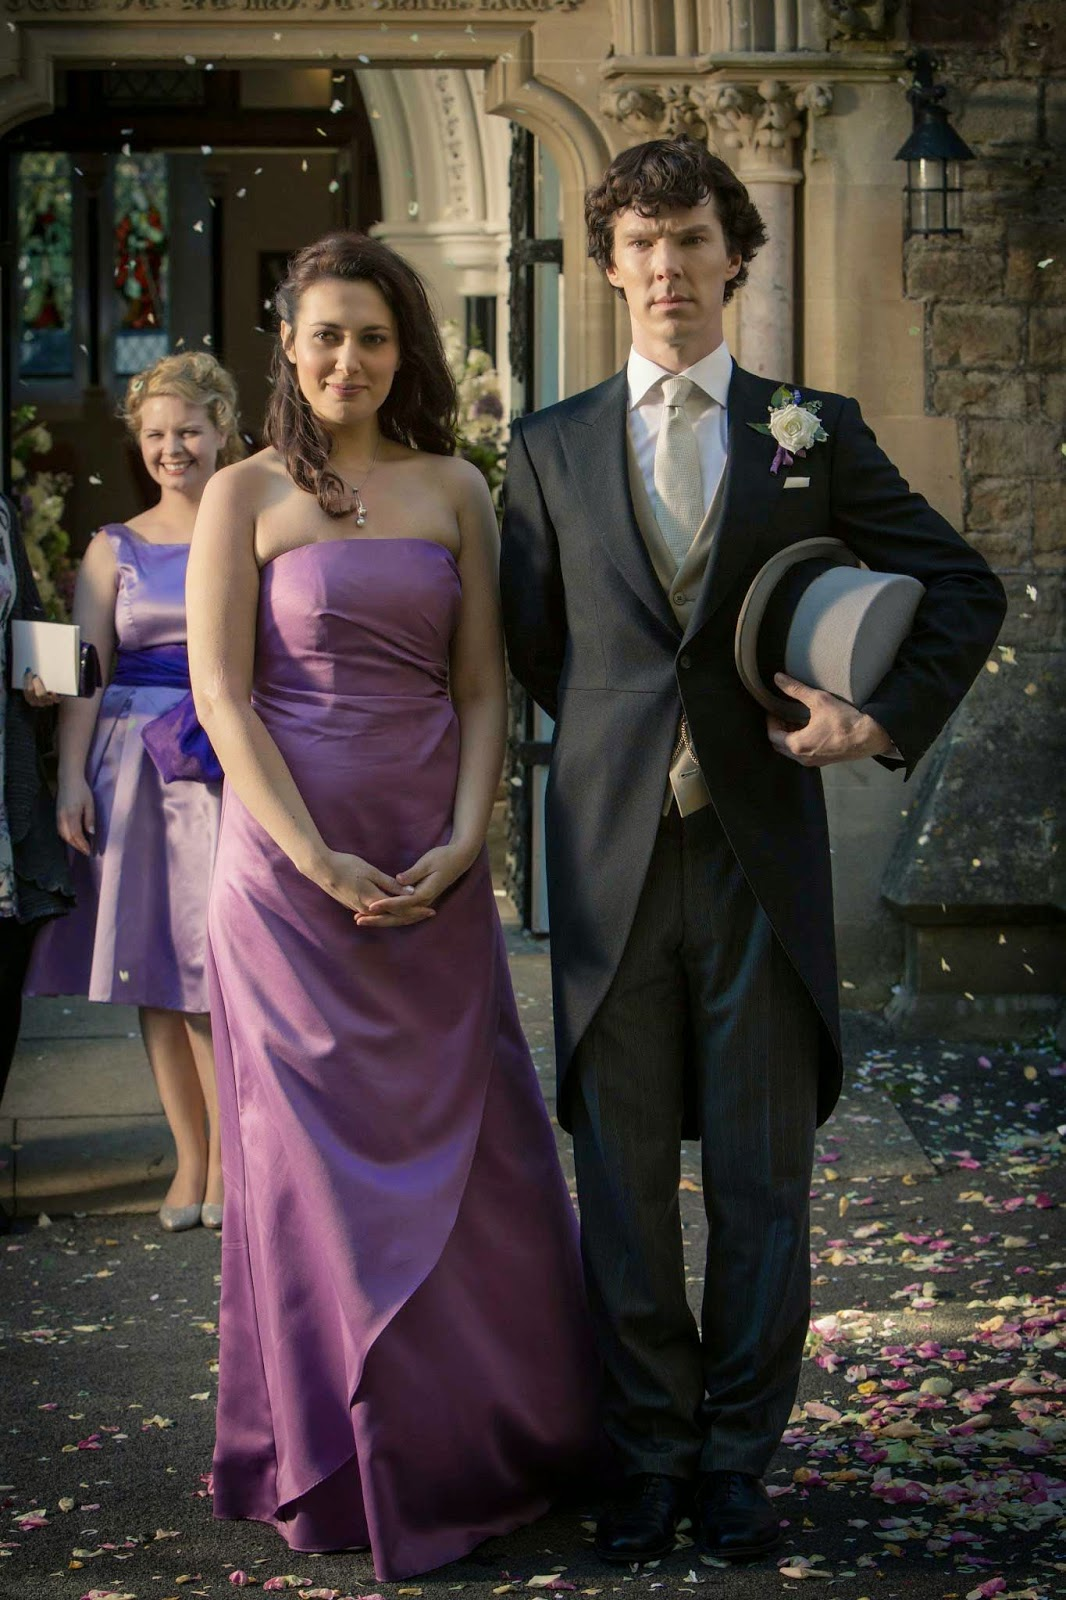 Benedict Cumberbatch as best man Sherlock and Yasmine Akram as Janine the bridesmaid in BBC Sherlock Season 3 Episode 2 The Sign of Three